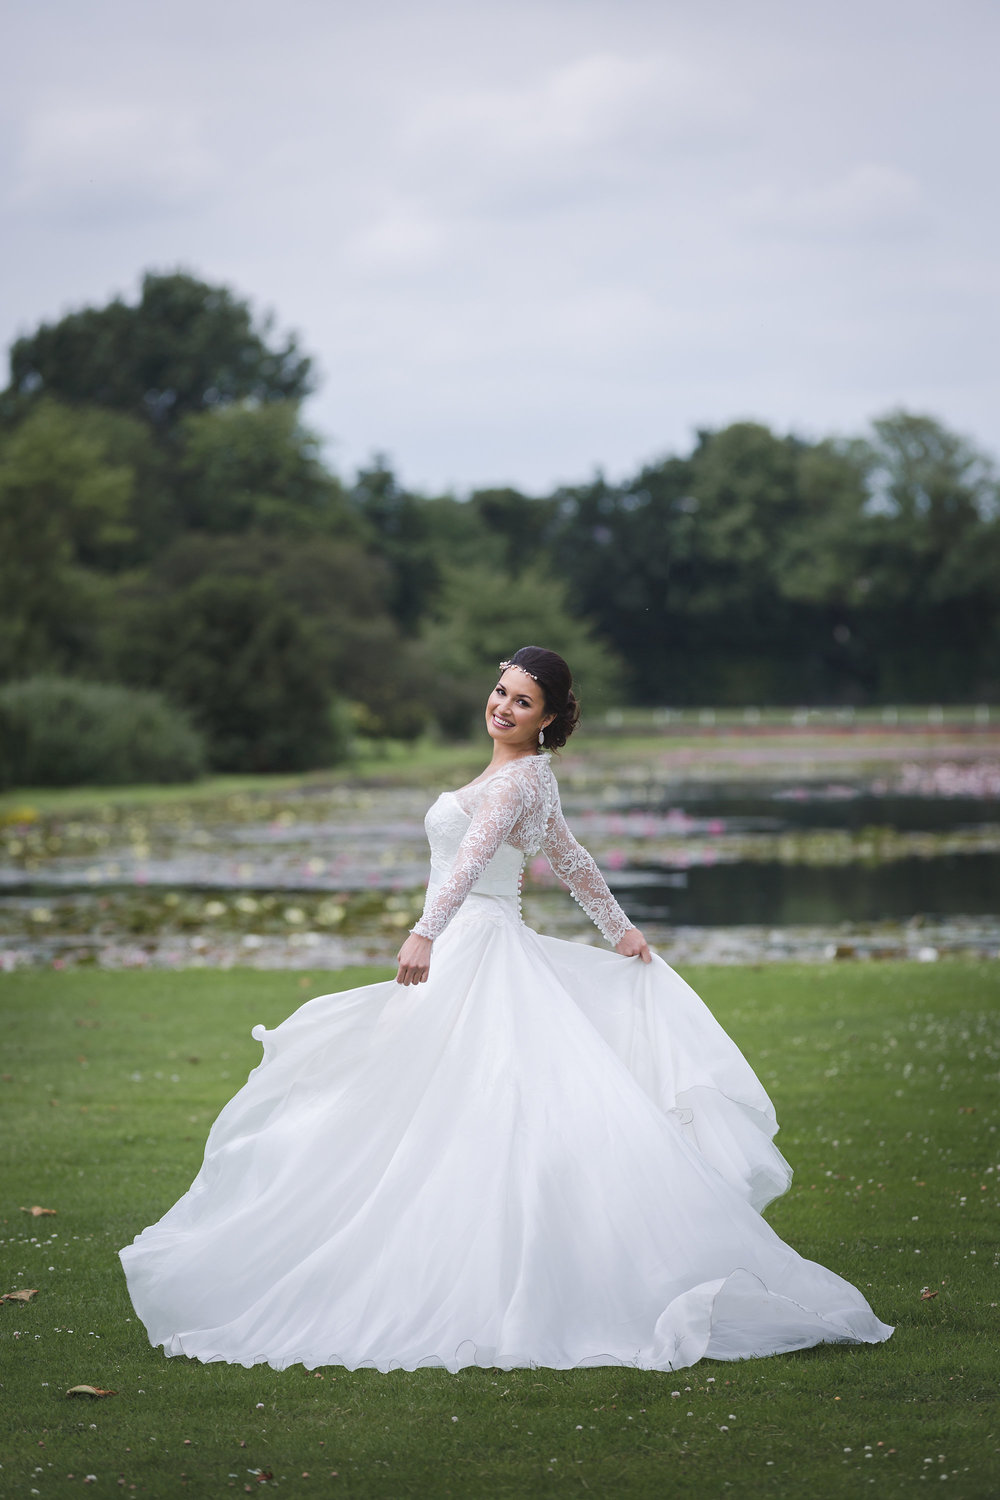 Suzanne Neville Bride-Charlotte Munro wedding stylist-London Wedding Planner-Photography by Anna Marie.jpg